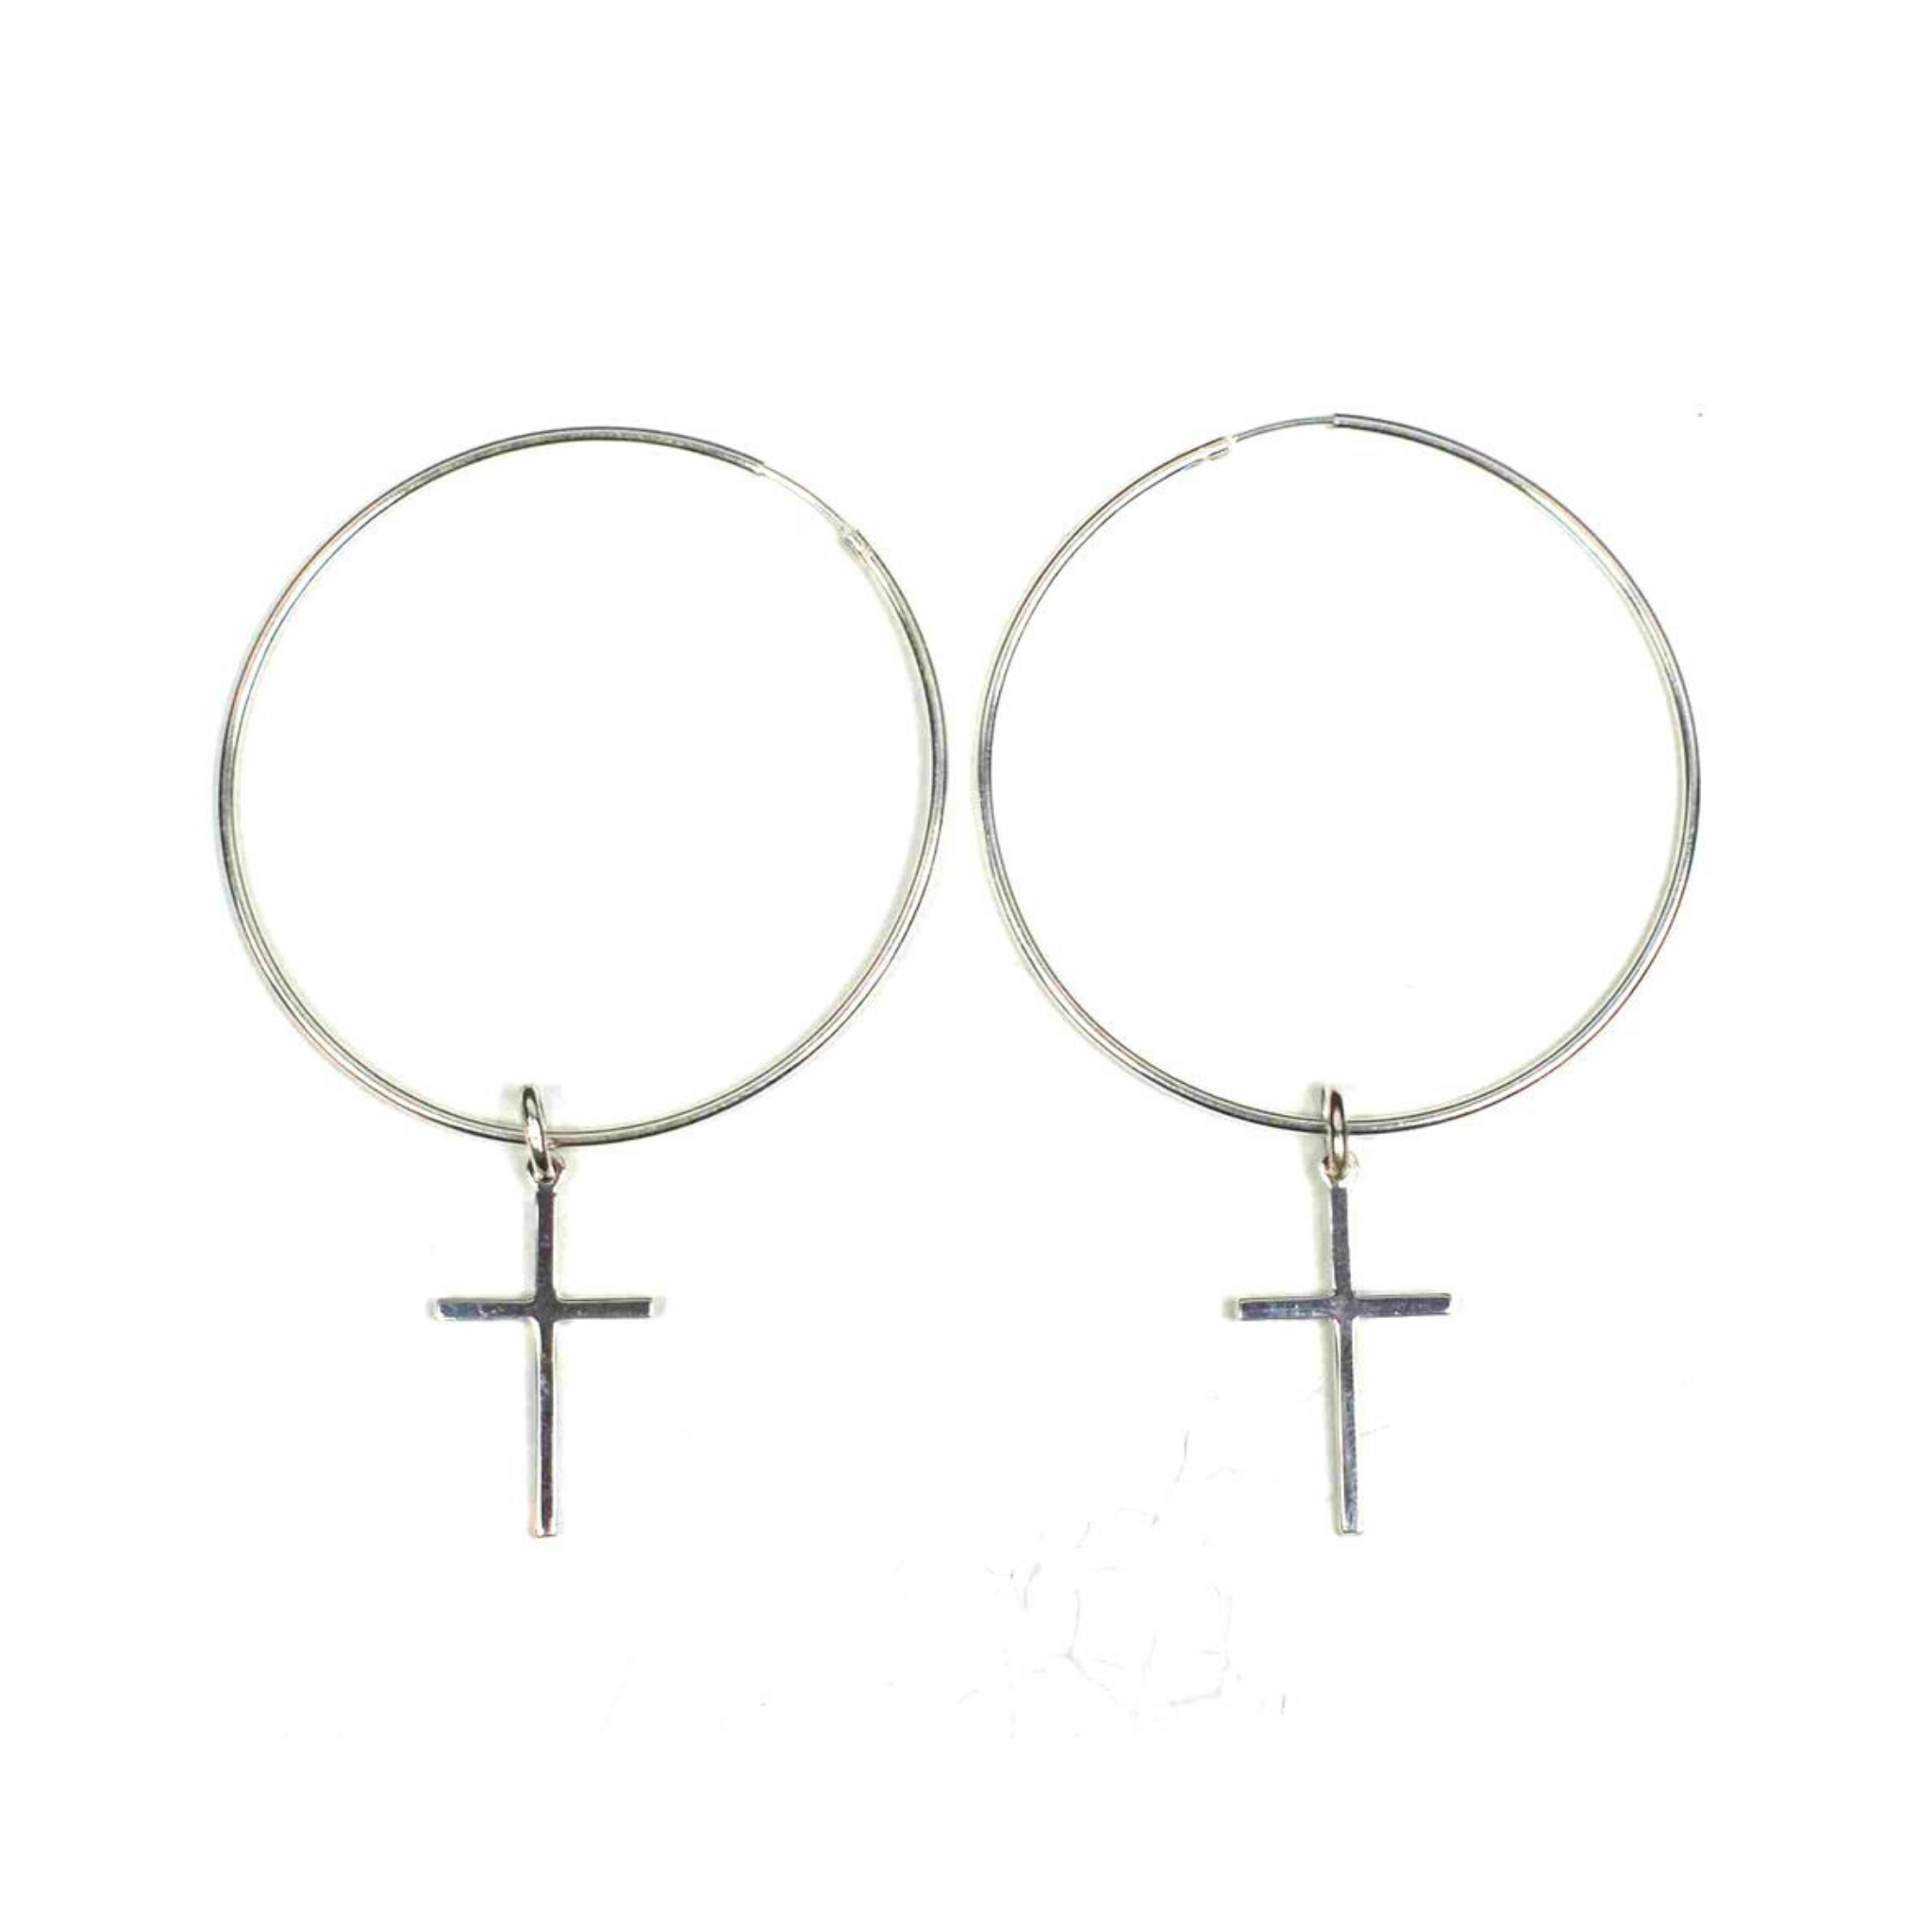 Sterling Silver Hoop and Cross Earrings - DISEGNO MIO